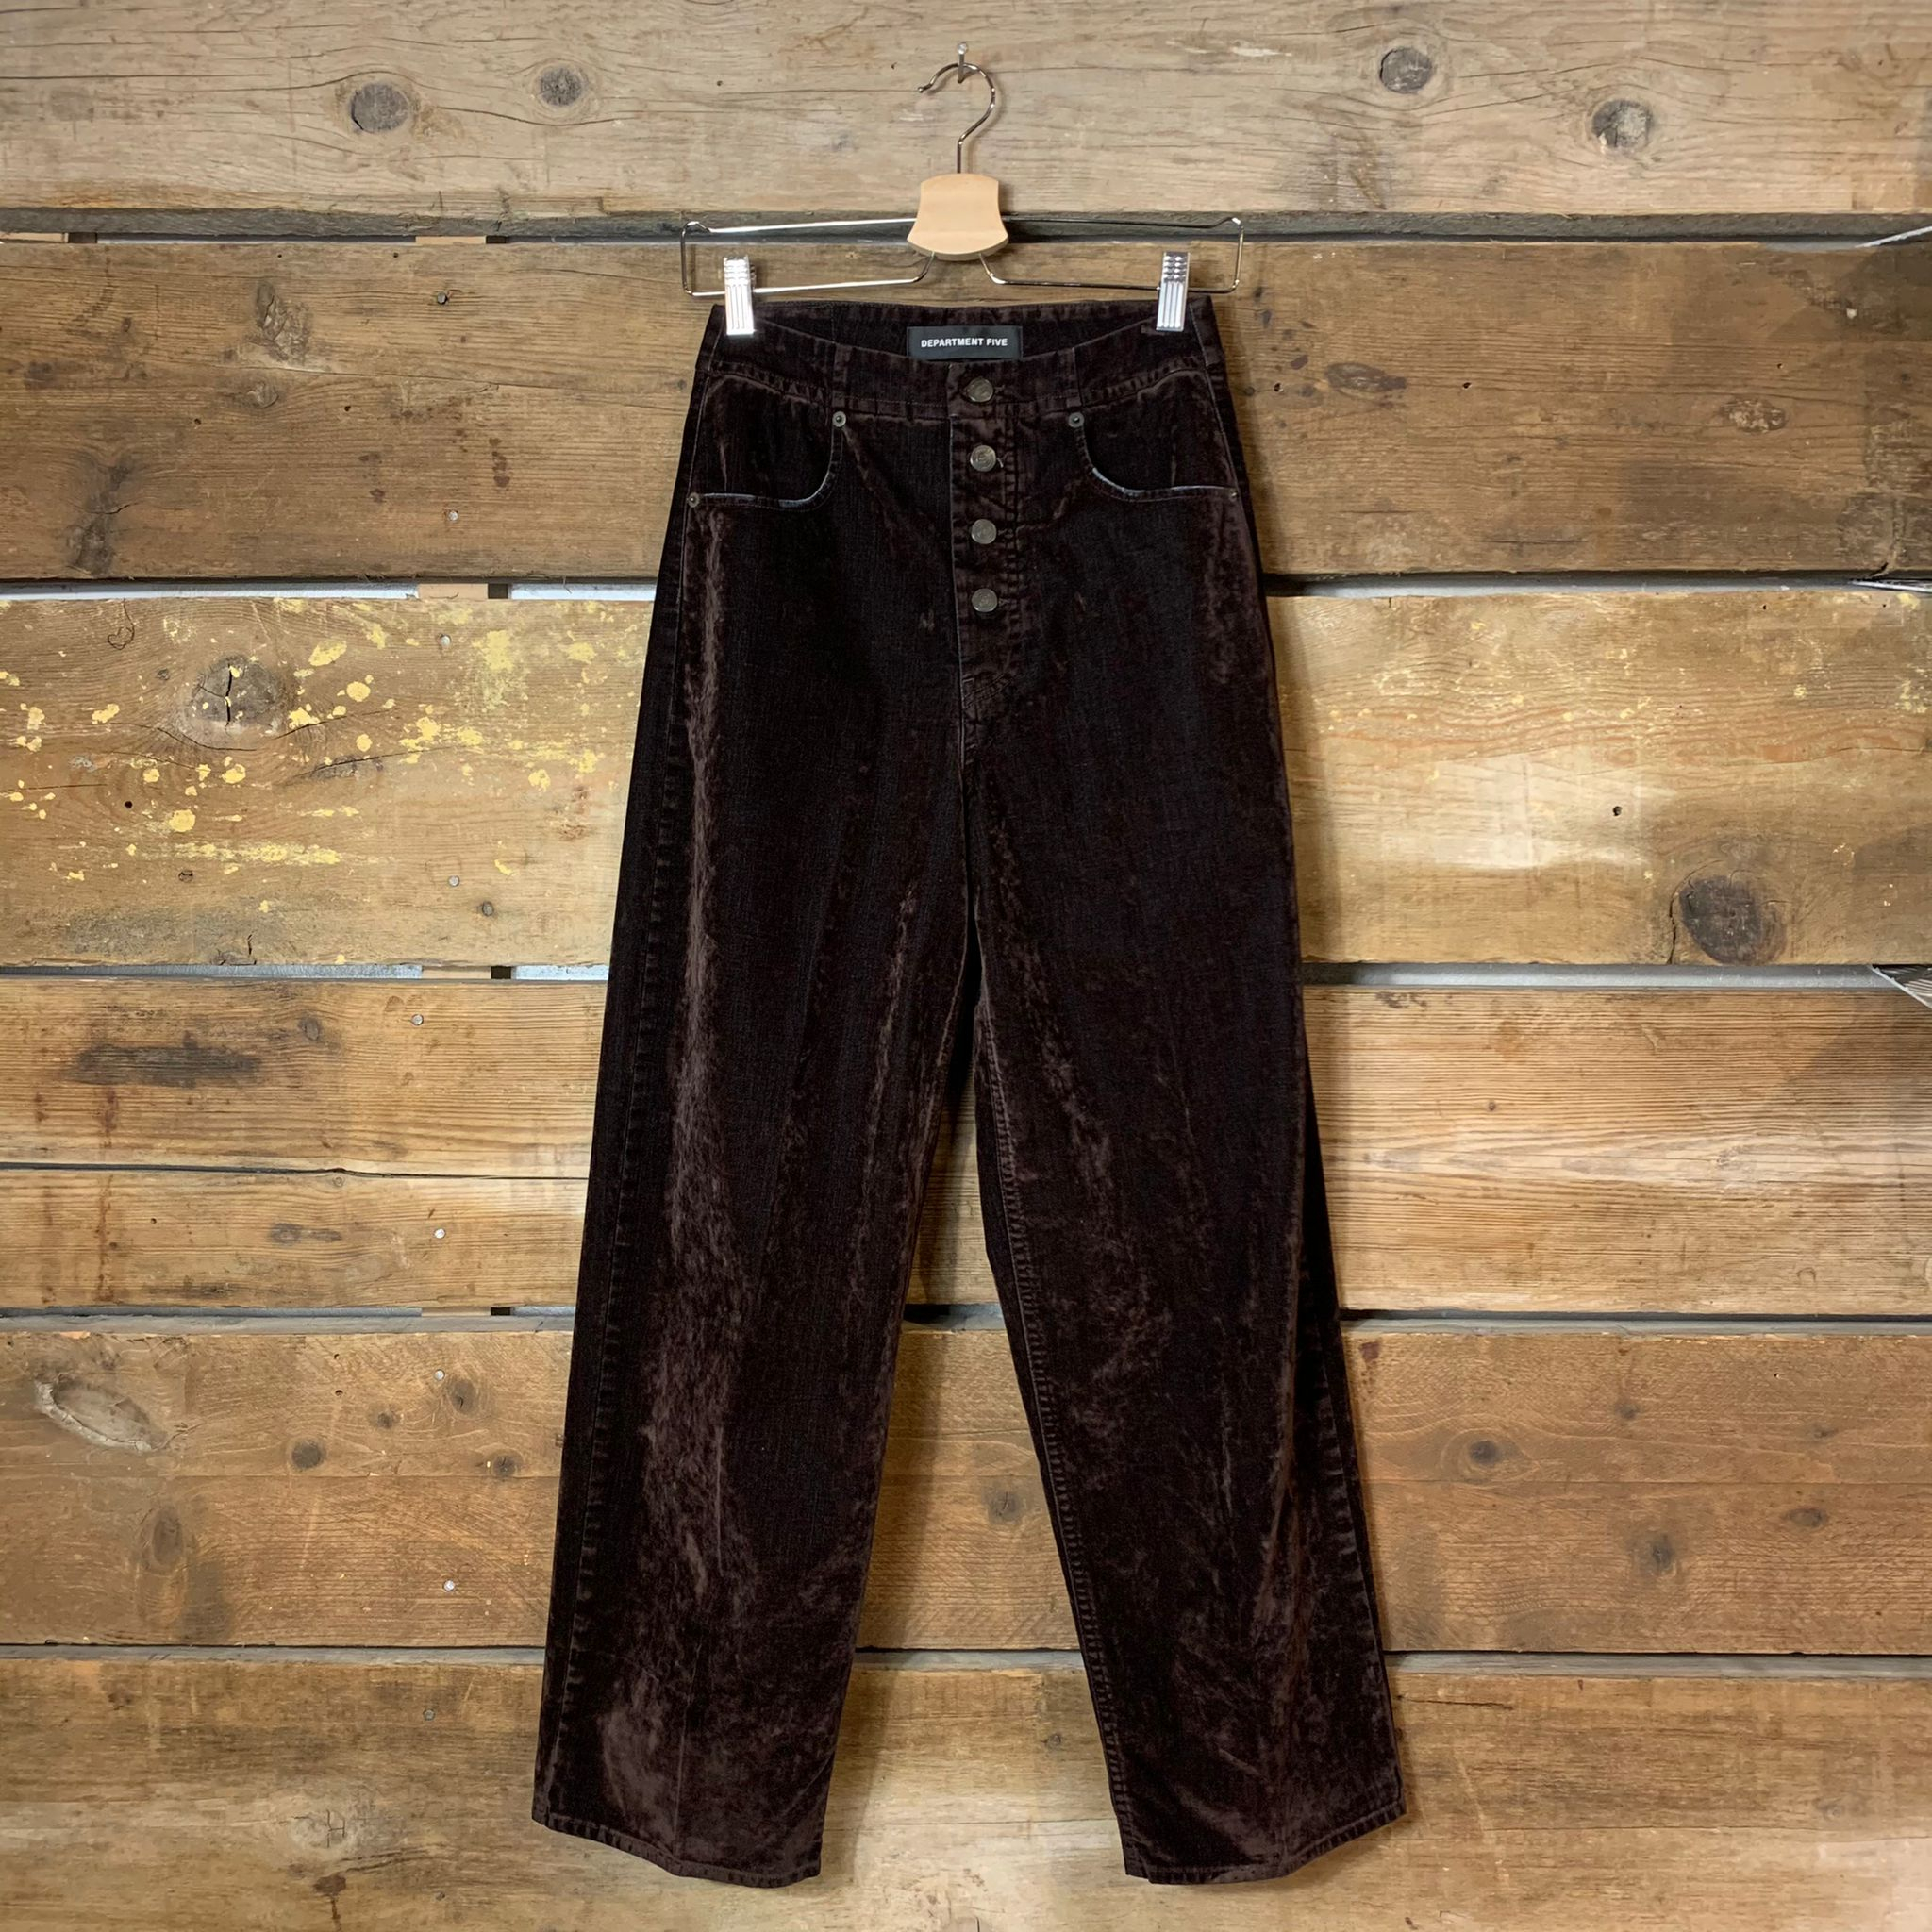 Pantalone Donna Department 5 Margy A Palazzo In Velluto Moro